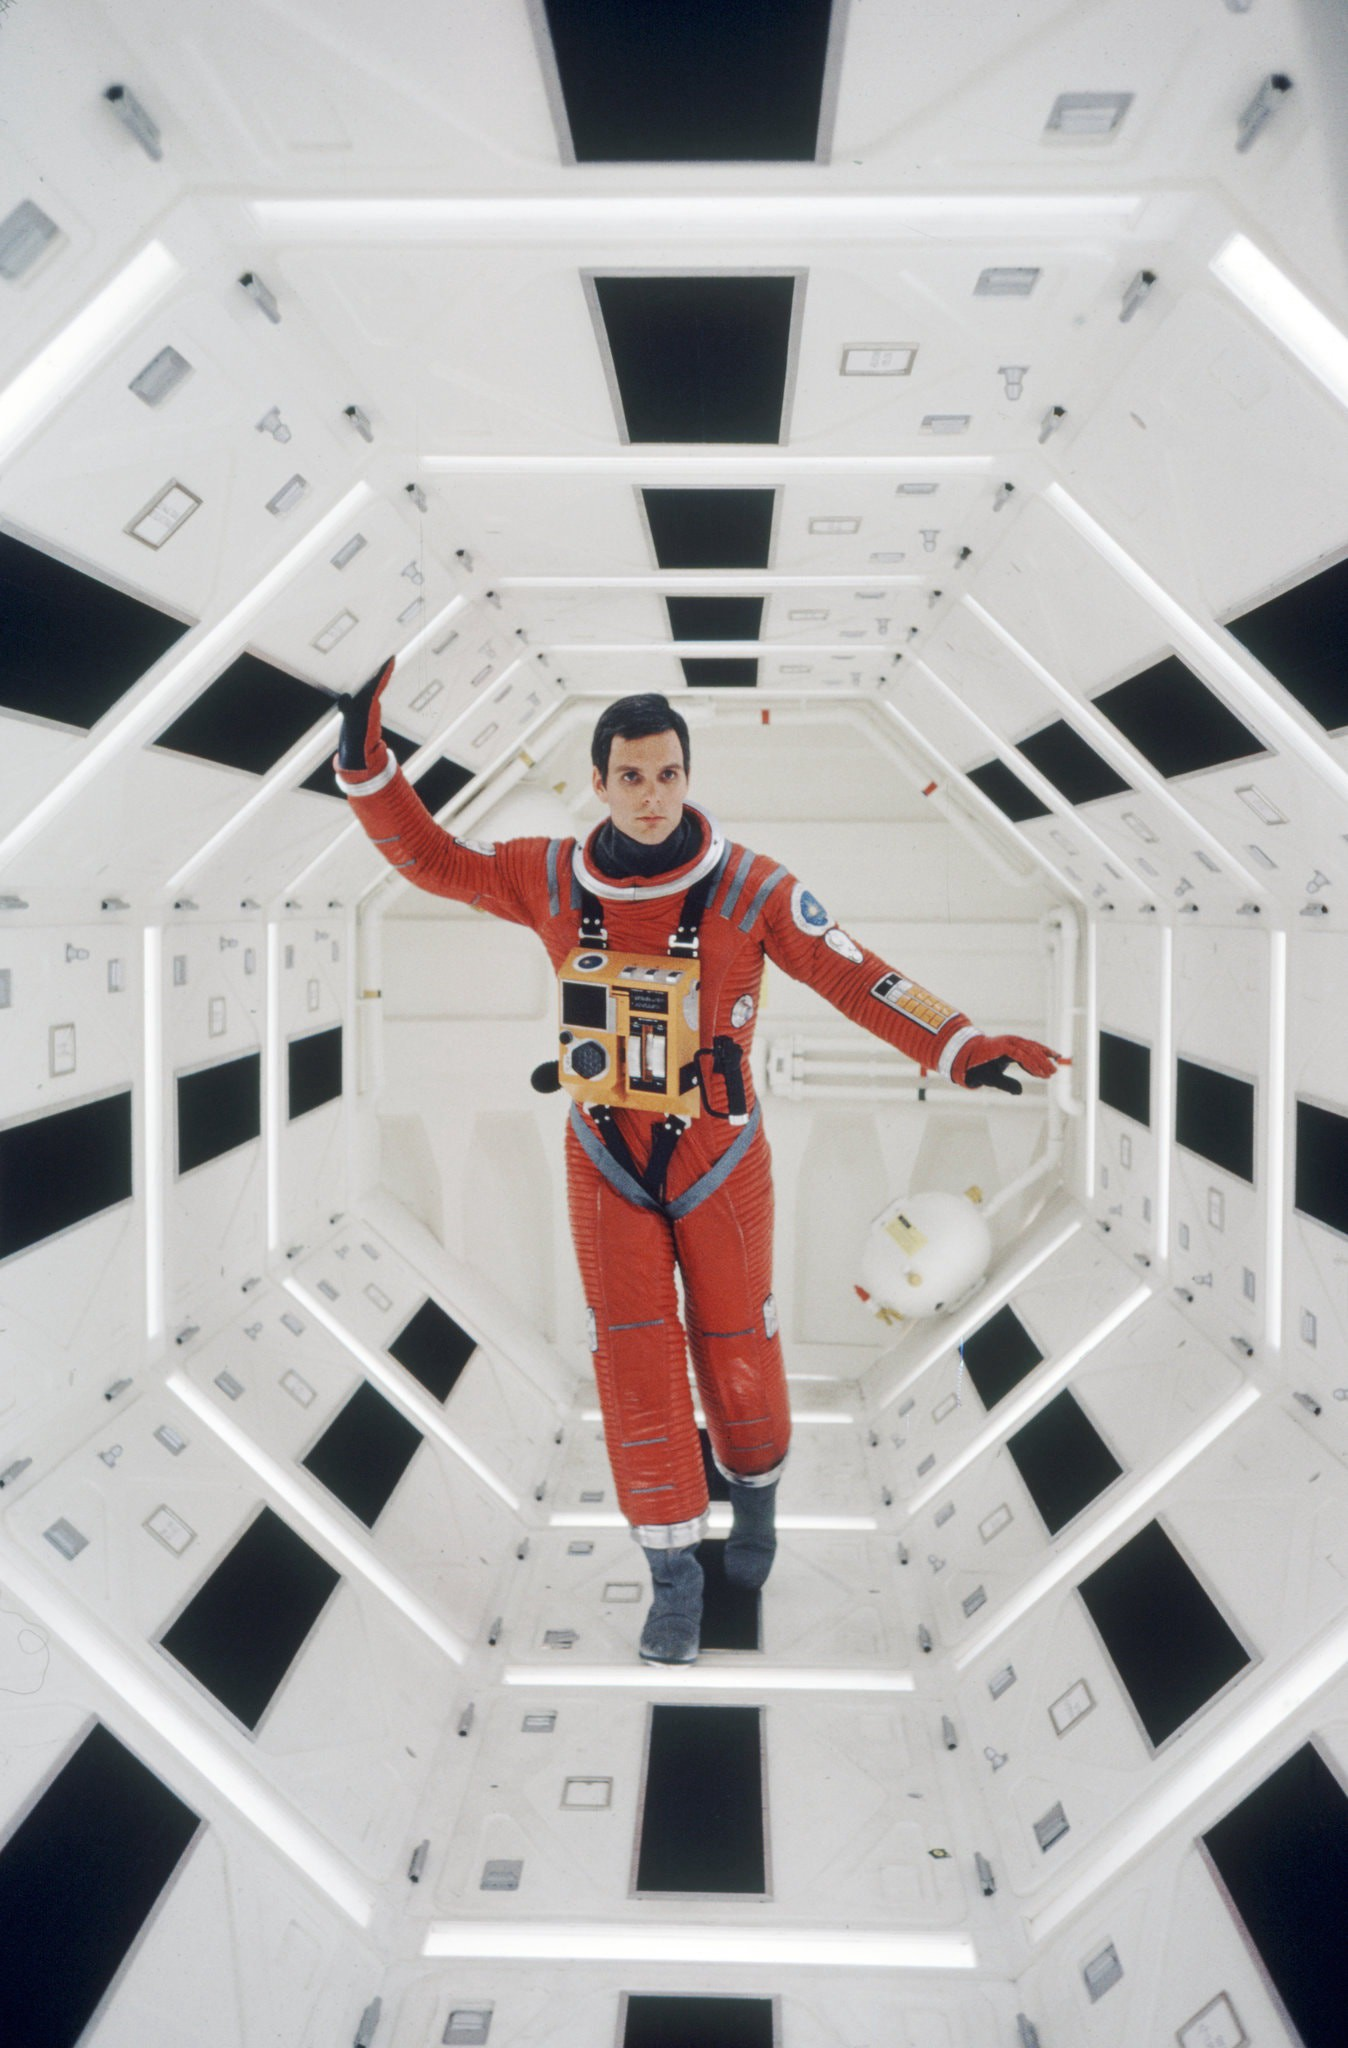 A picture from the movie 2001: A Space Odyssey. A astronaut floats in a futuristic white corridor while on a spaceship.